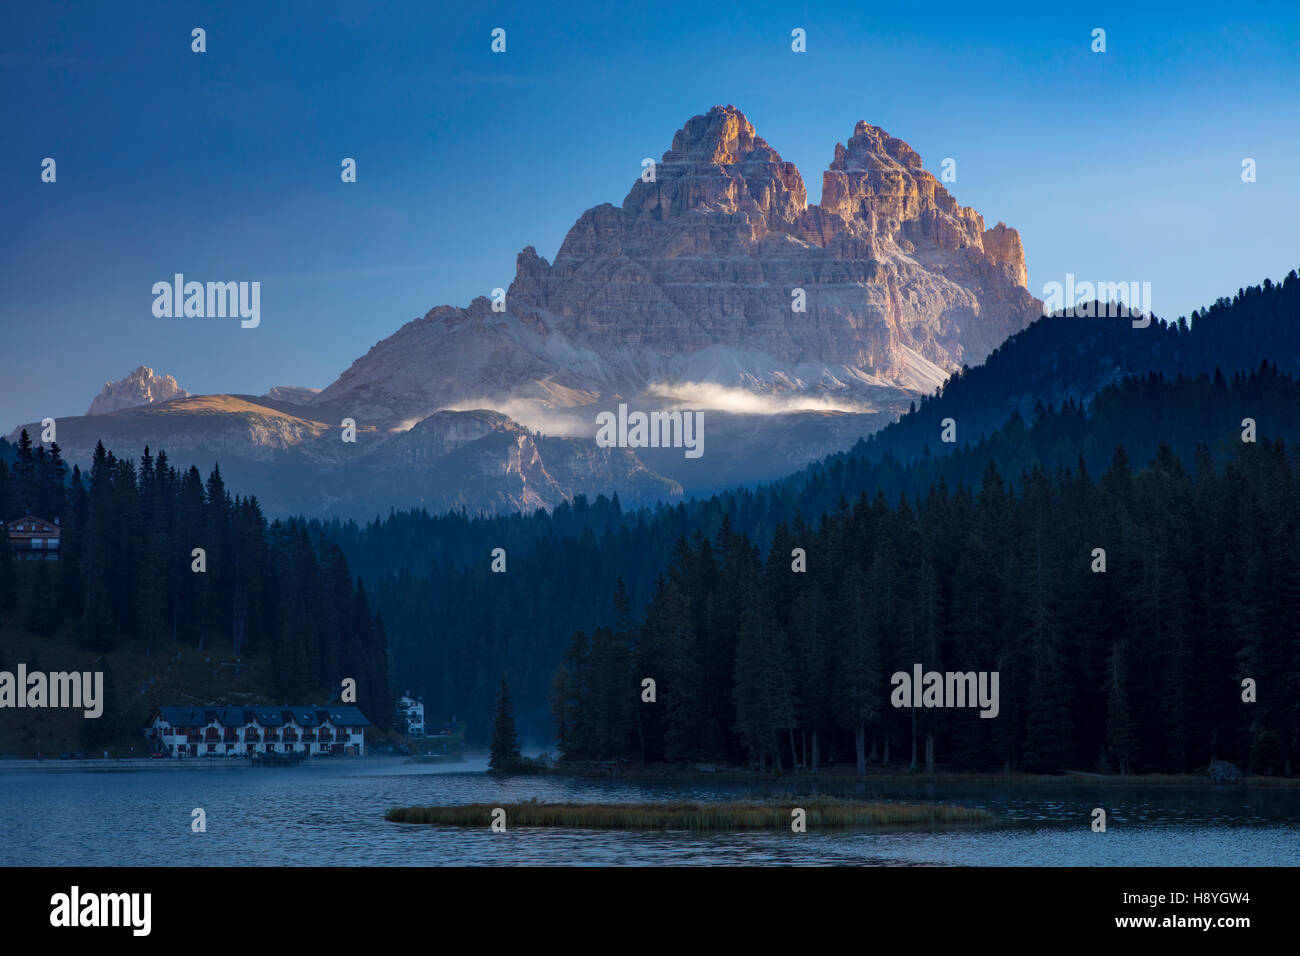 Tre Cime of the Dolomites tower over Lago Misurina, Belluno, Italy - Stock Image